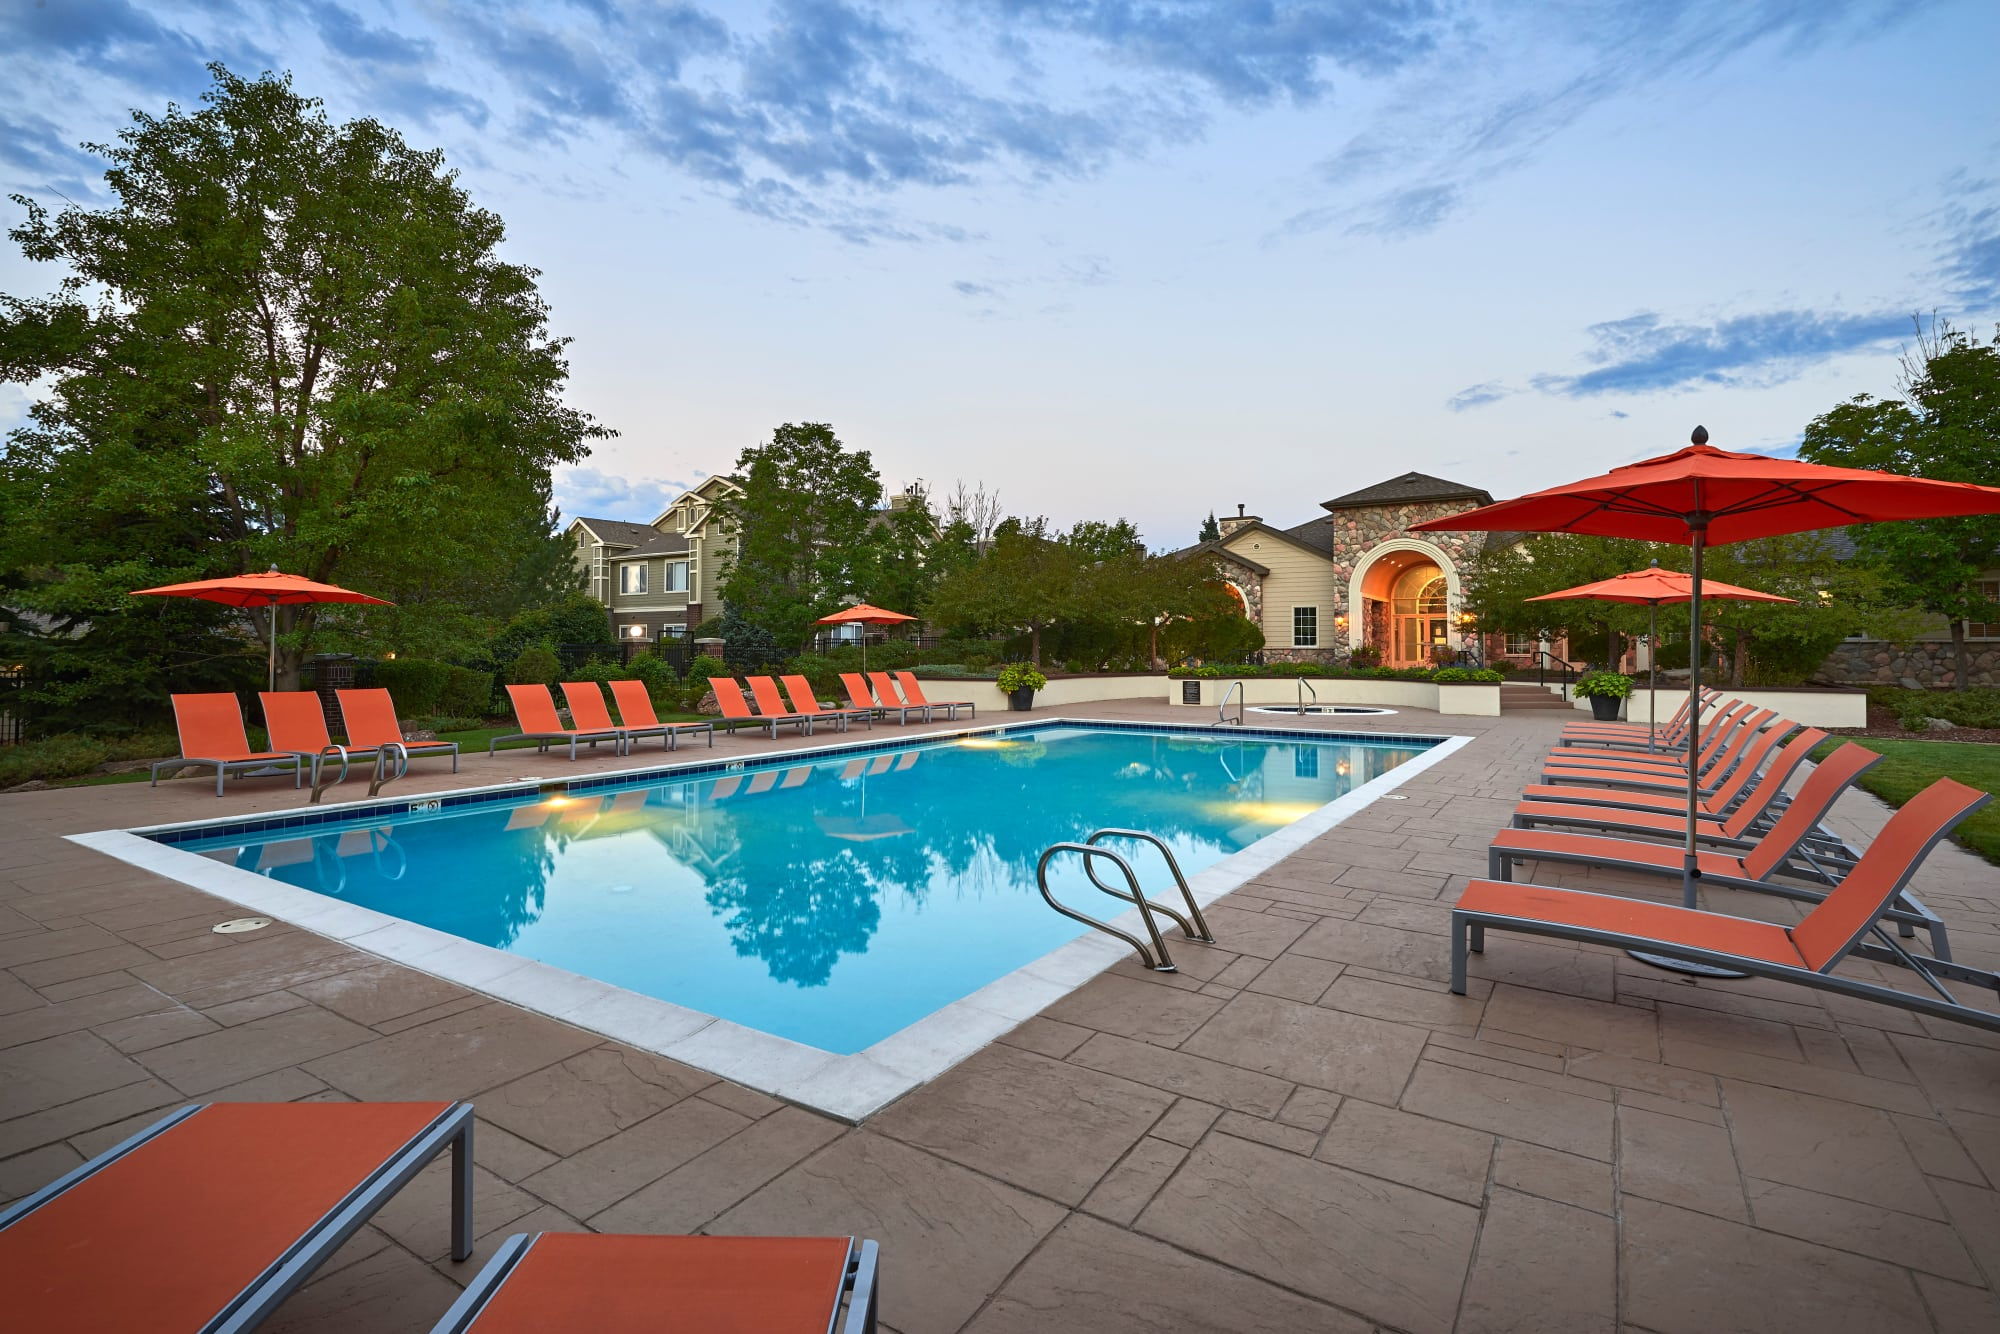 Pool area with lounge chairs at Legend Oaks Apartments